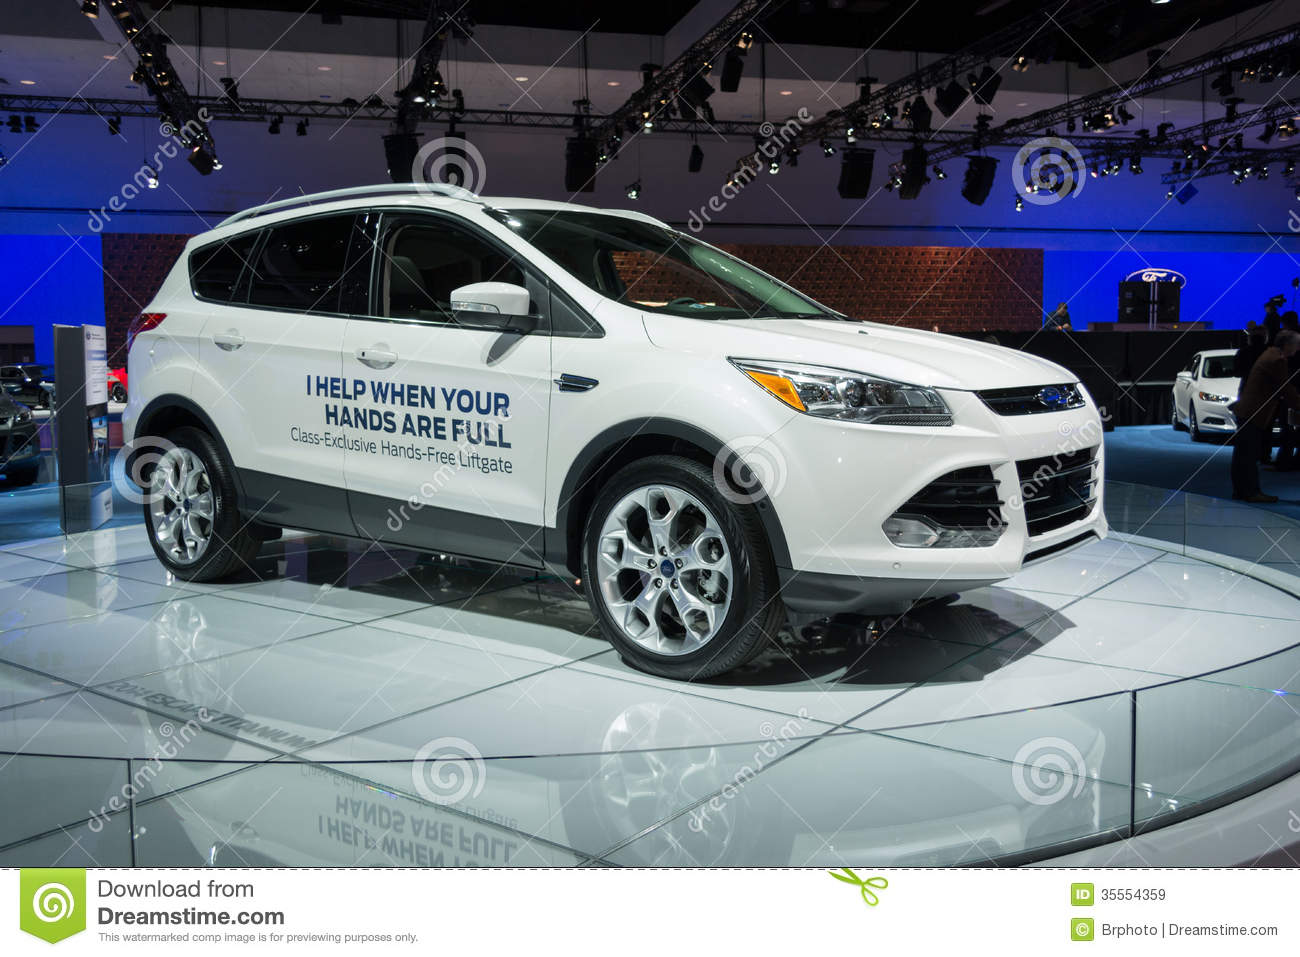 Ford Escape HandsFree Liftgate Cars On Display At The LA Auto S - When is the la car show